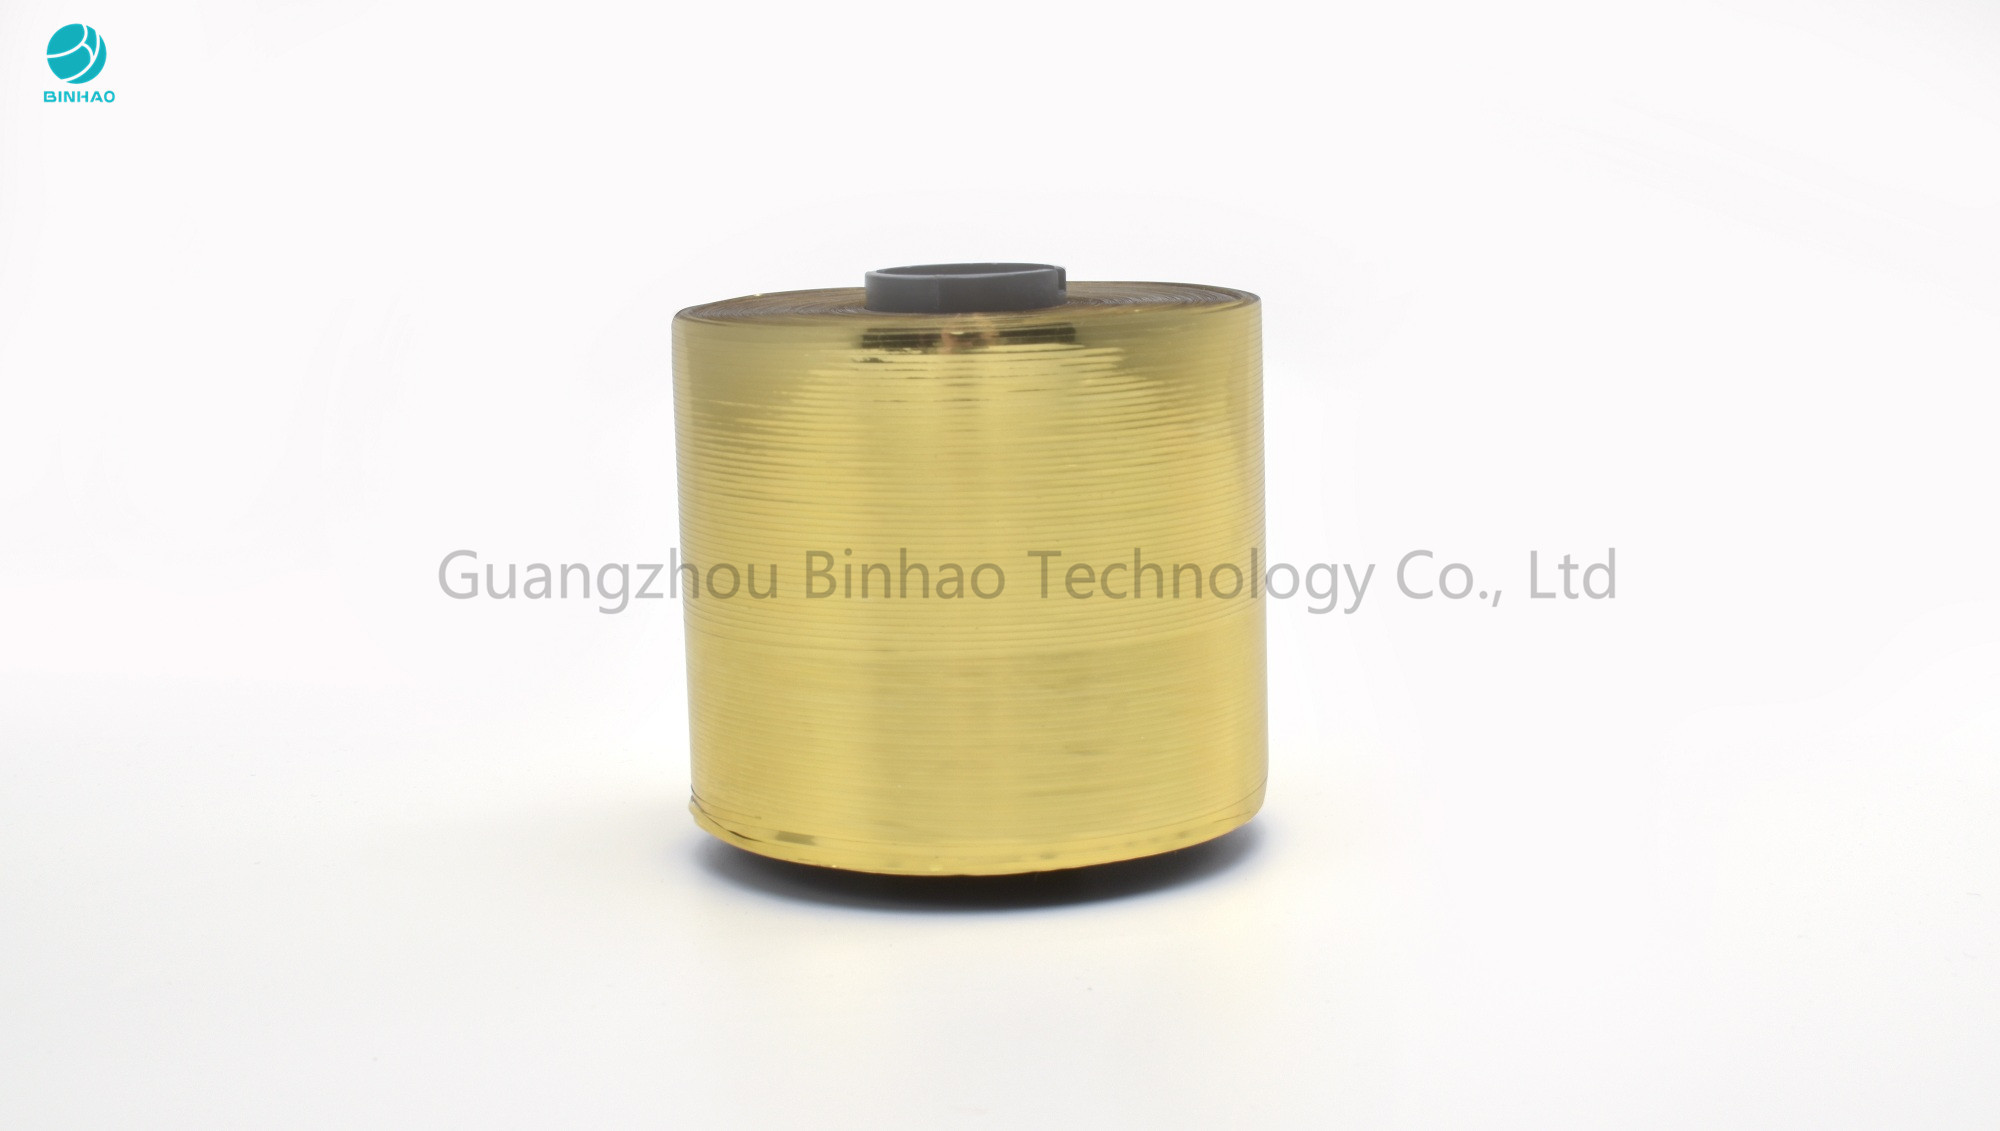 Gold Metallized Cigarette Packing Easy Tear Strip Self Adhesive Tape In 152mm ID Bobbin